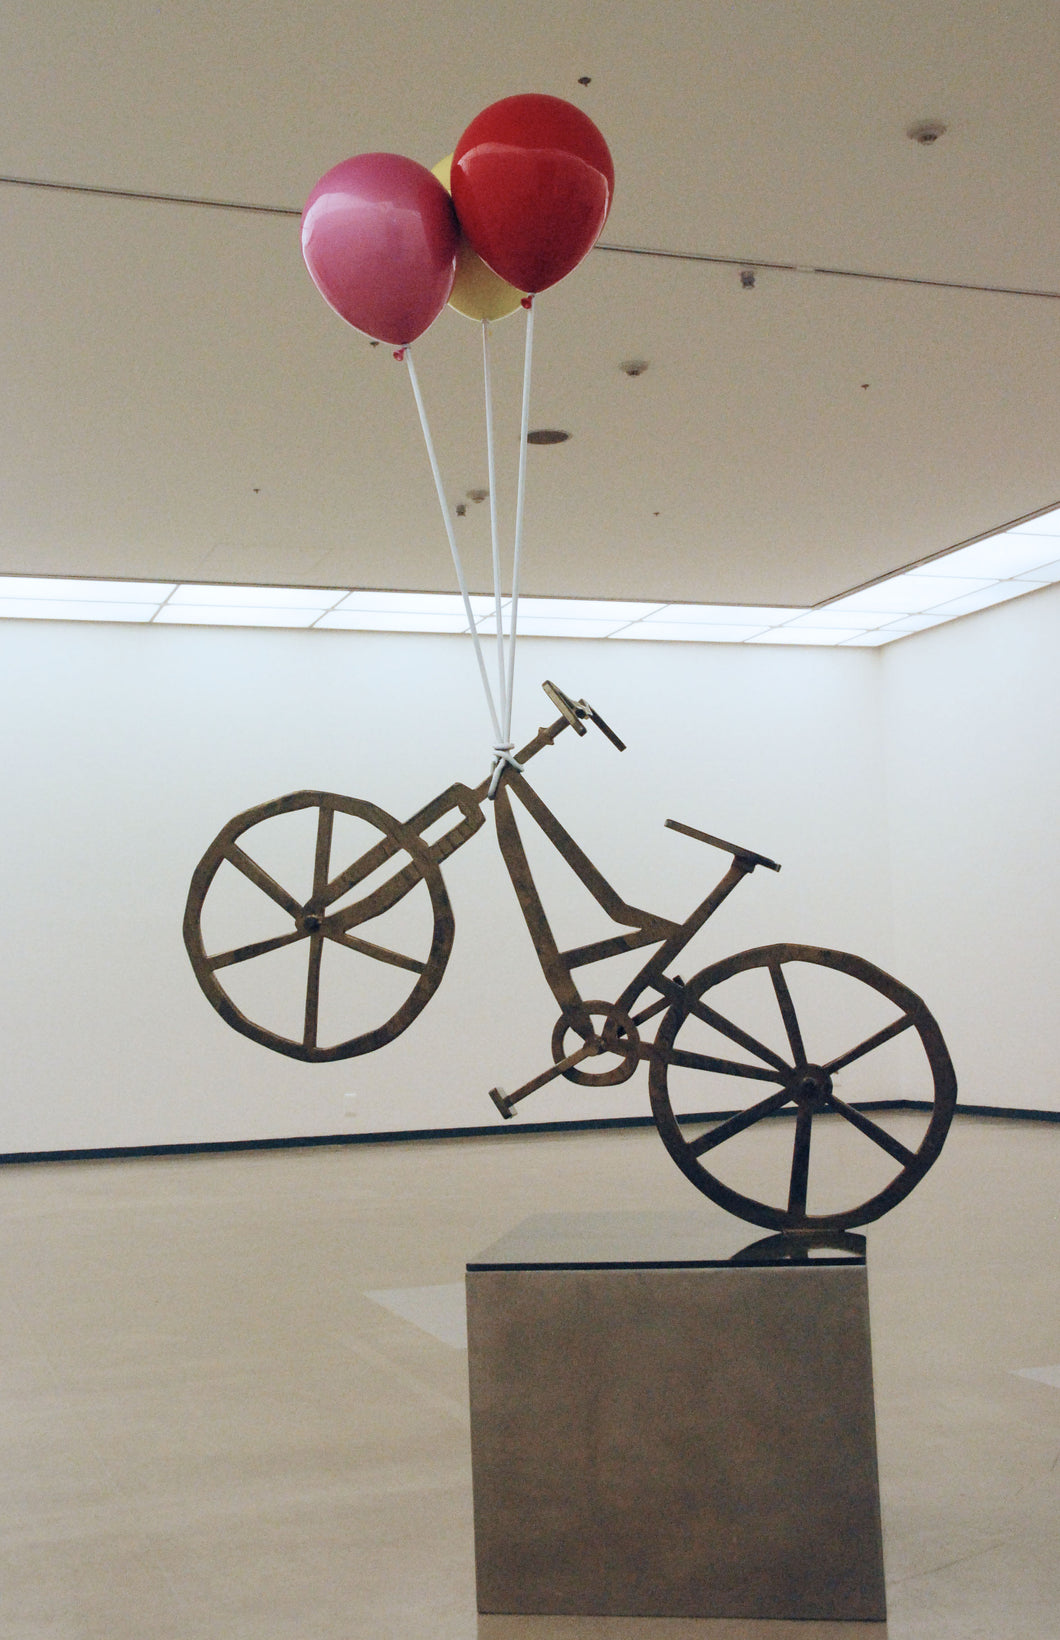 'Flying Bicycle' by Kang Ok Jeon, 2018, Stainless Steel